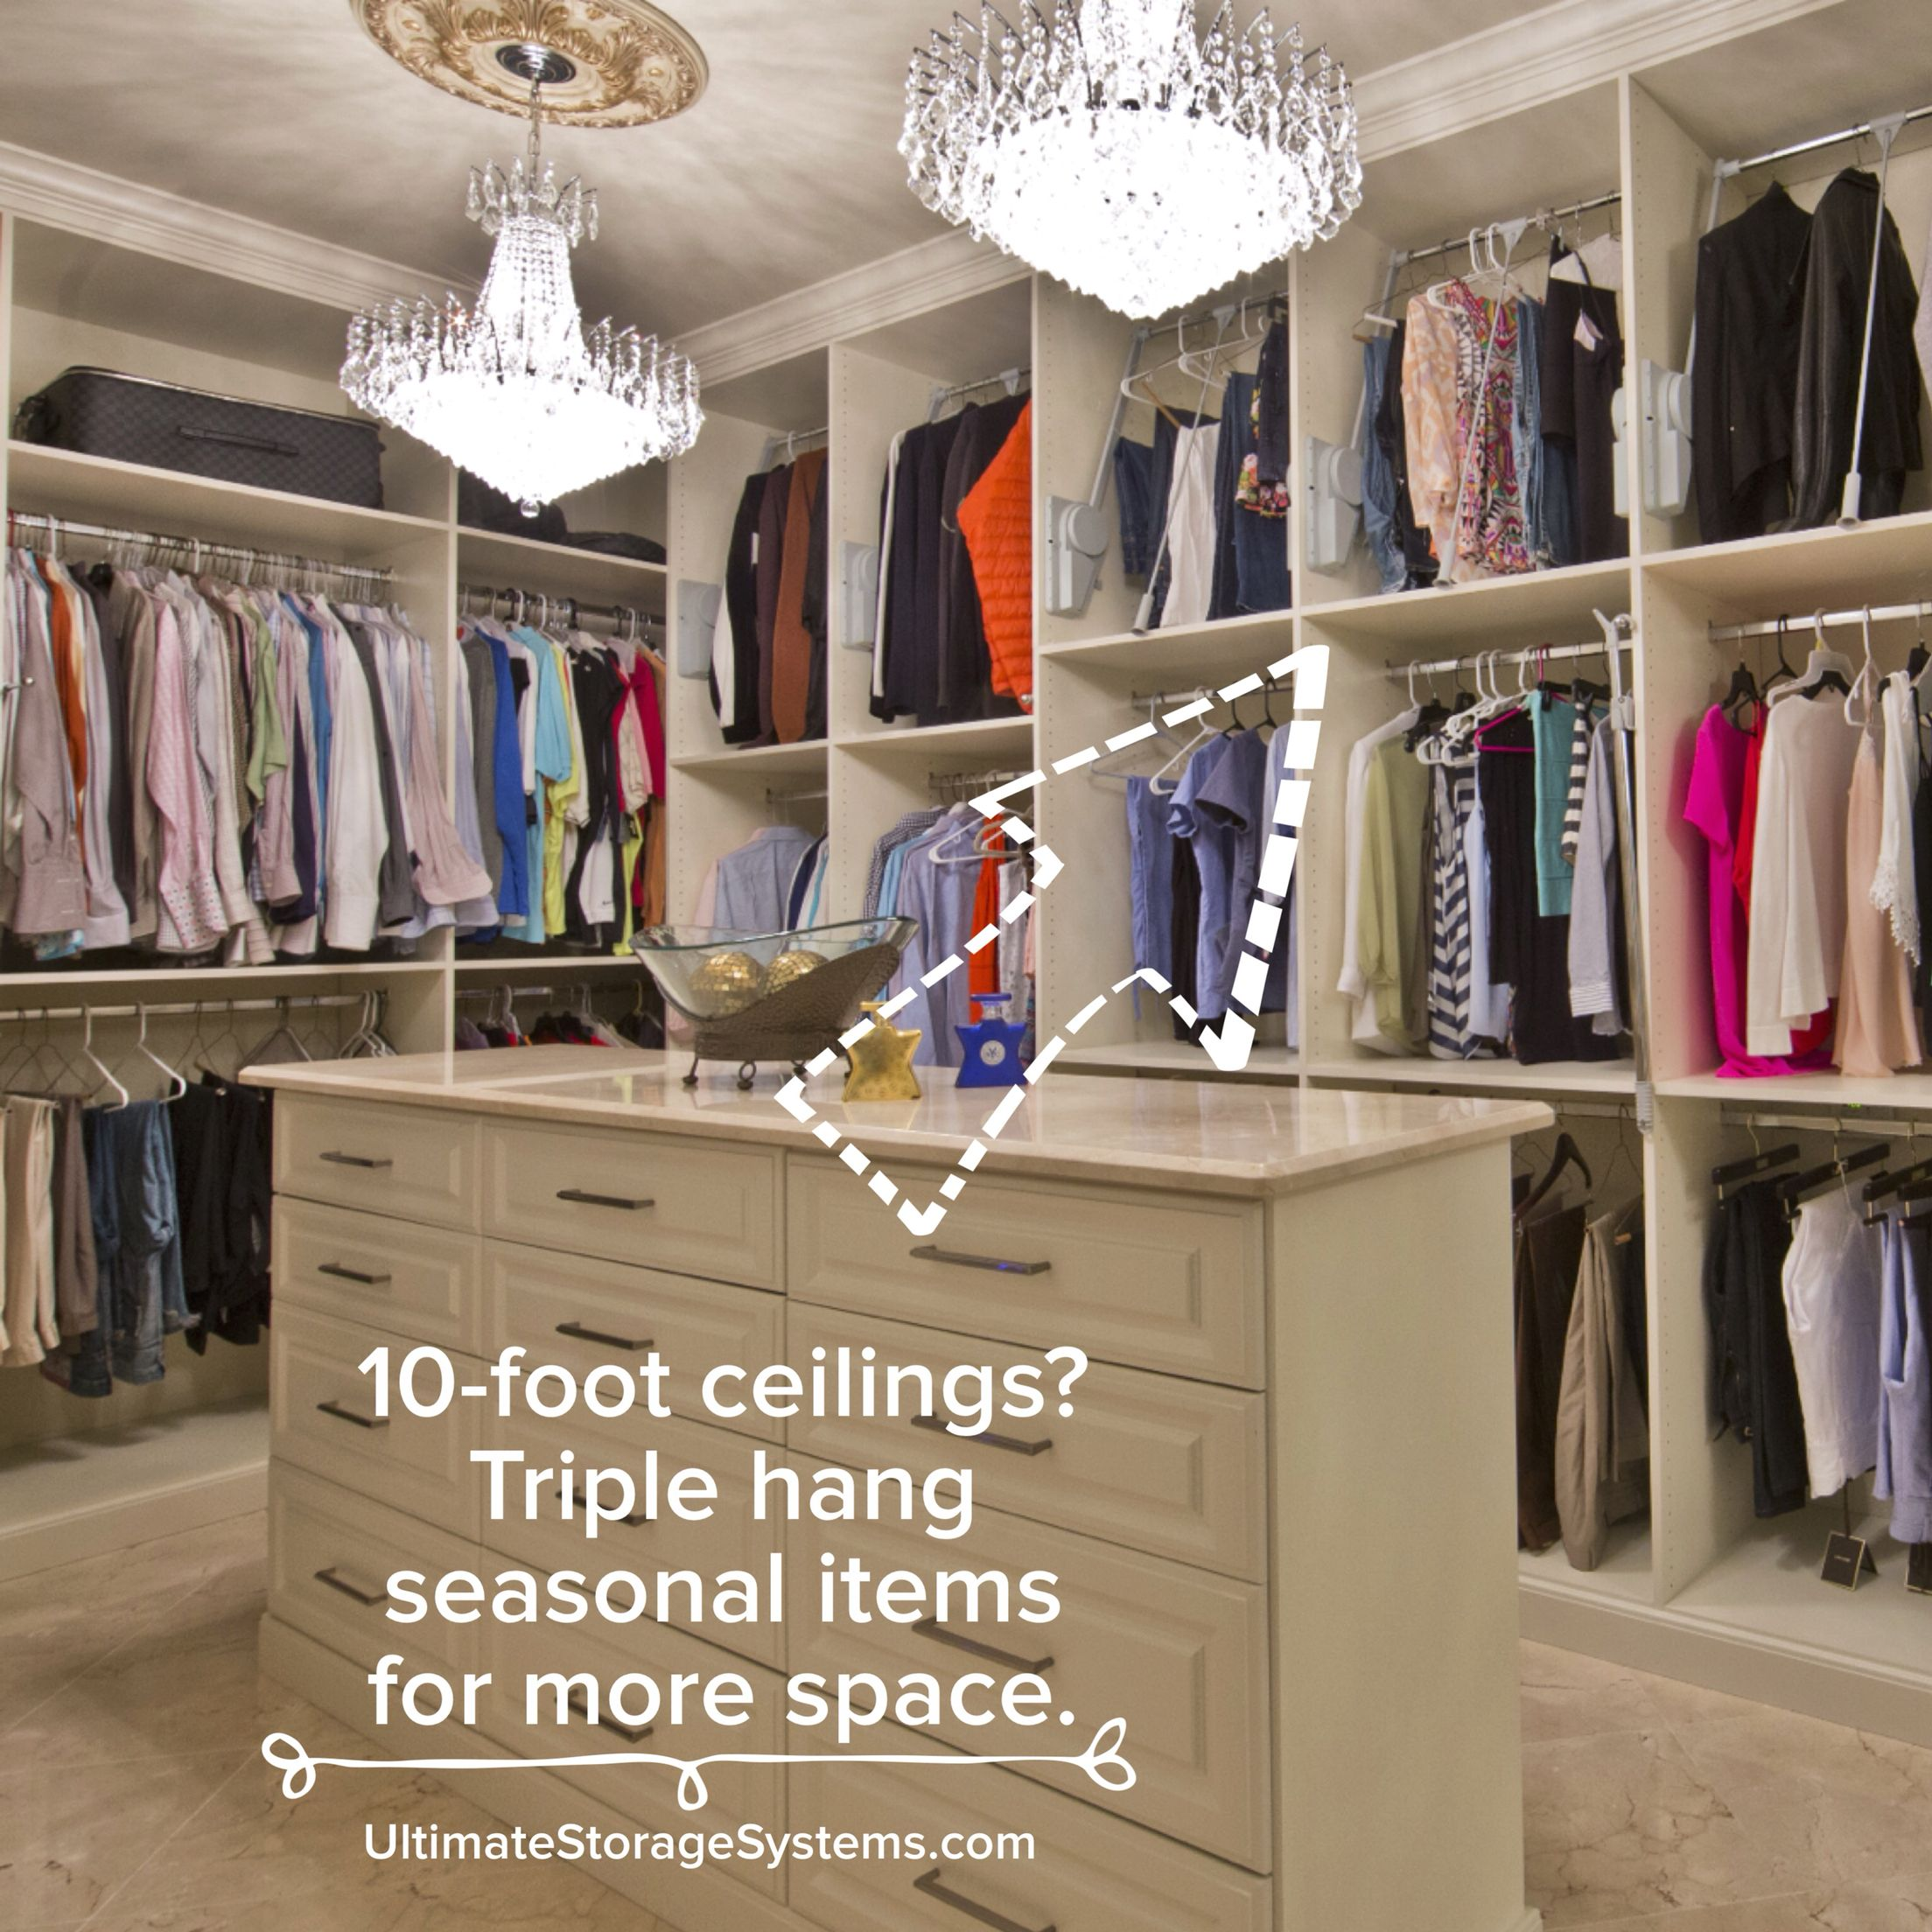 With 10foot ceilings, women can triple hang their